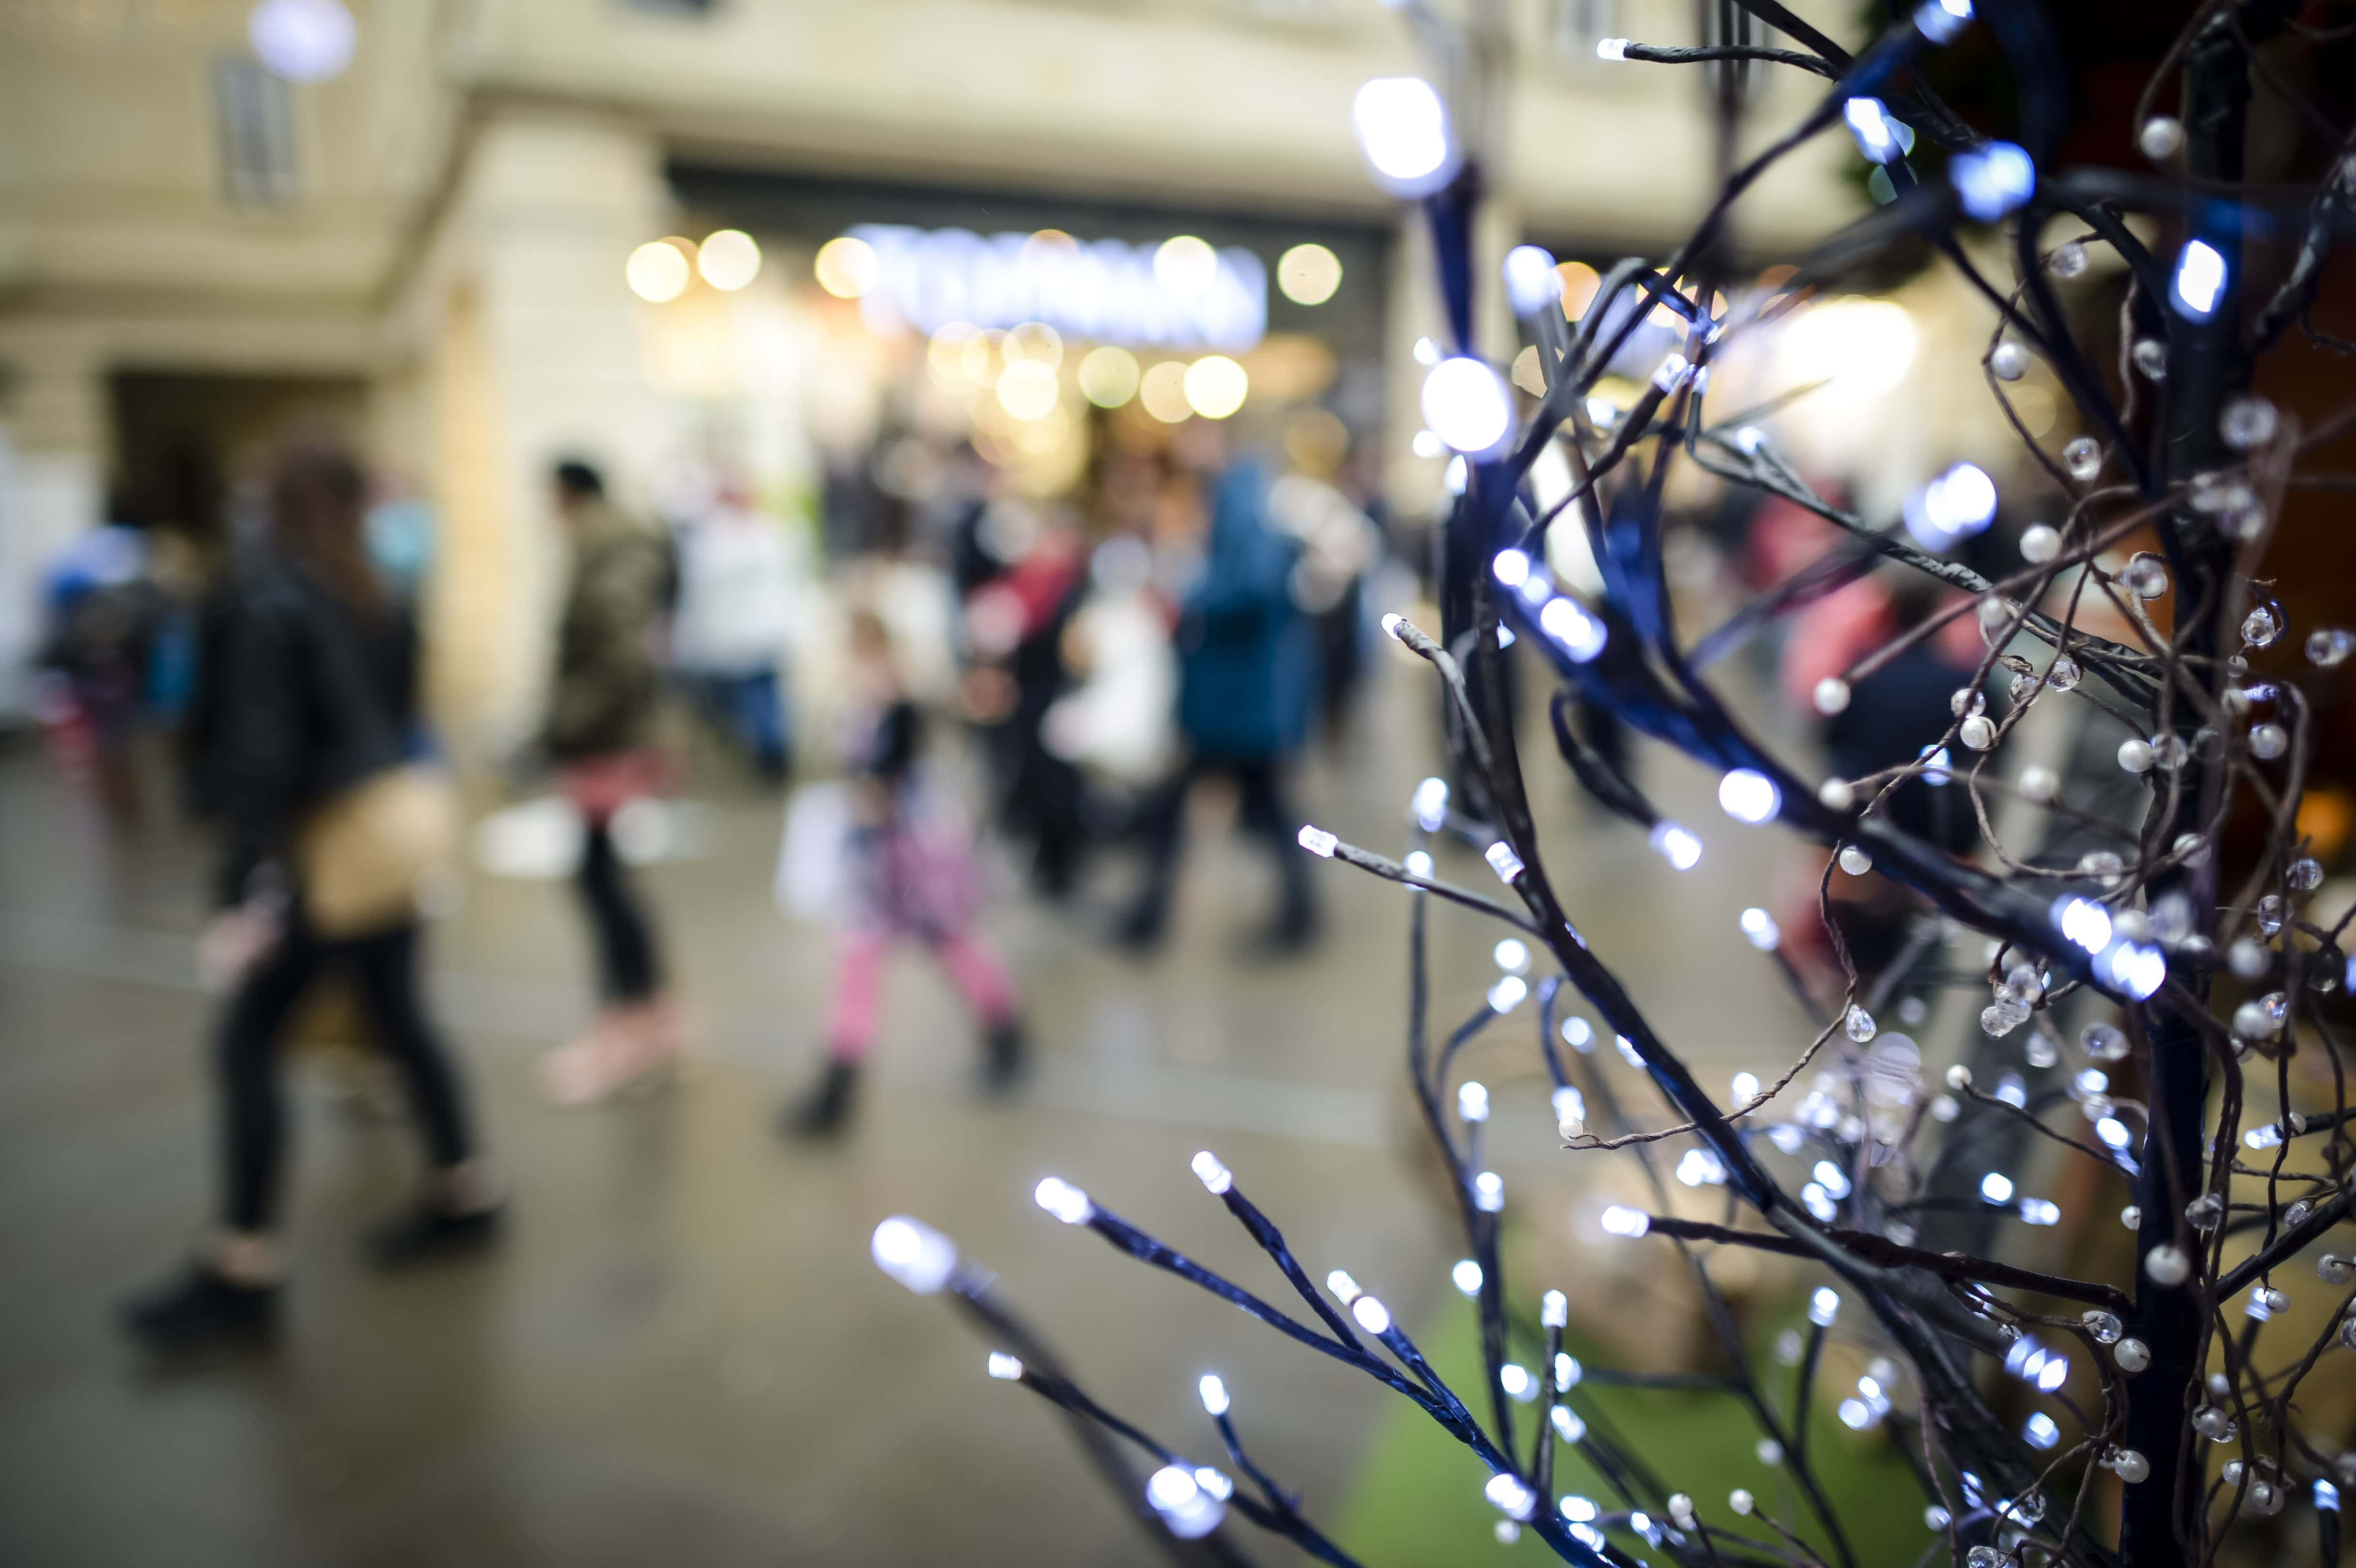 Fairy lights in Bath, as panic-buyers and bargain-hunters are expected to flood stores on the busiest day in the Christmas shopping calendar today, with high street shops slashing prices in an attempt to coax consumers down the aisles.